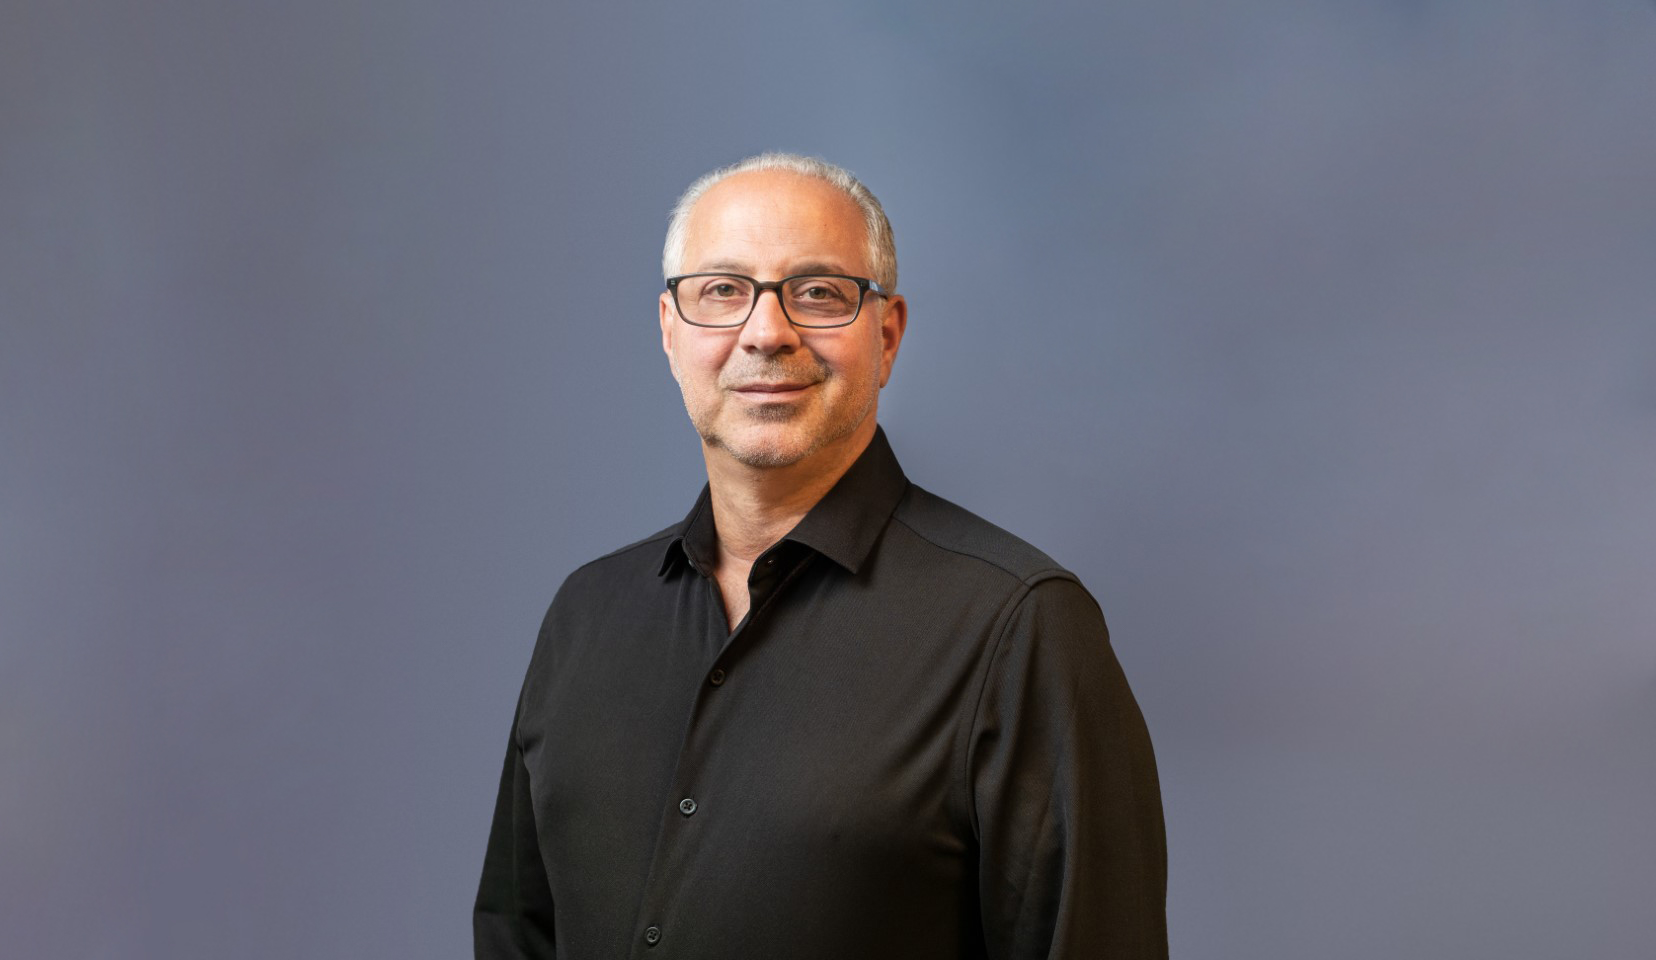 30-Year Wellness and Beauty Industry Veteran Brings Experience, Expertise to Growing Fast-Moving Consumer Goods Brand Portfolio